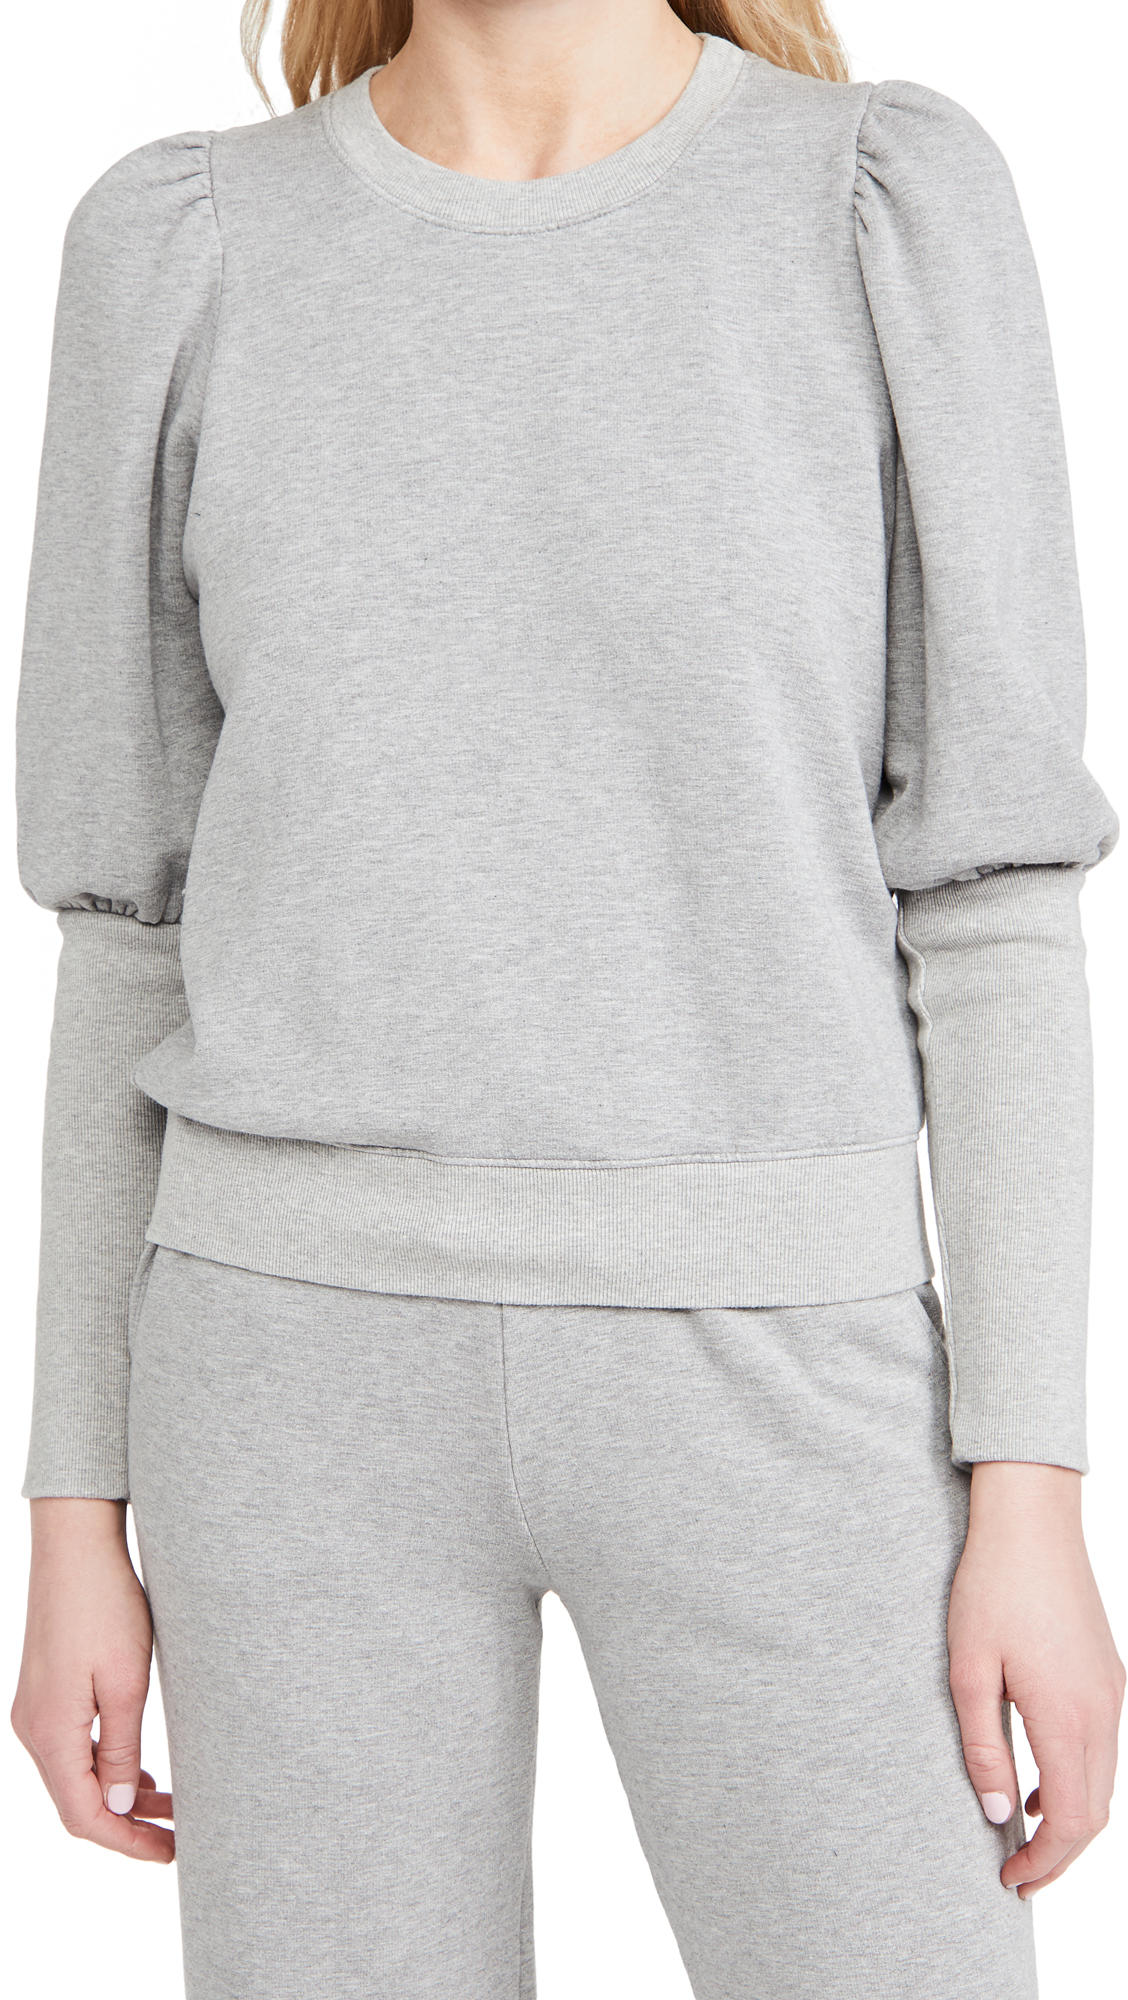 Sundry Sweatshirts PUFFED SHOULDER SWEATSHIRT